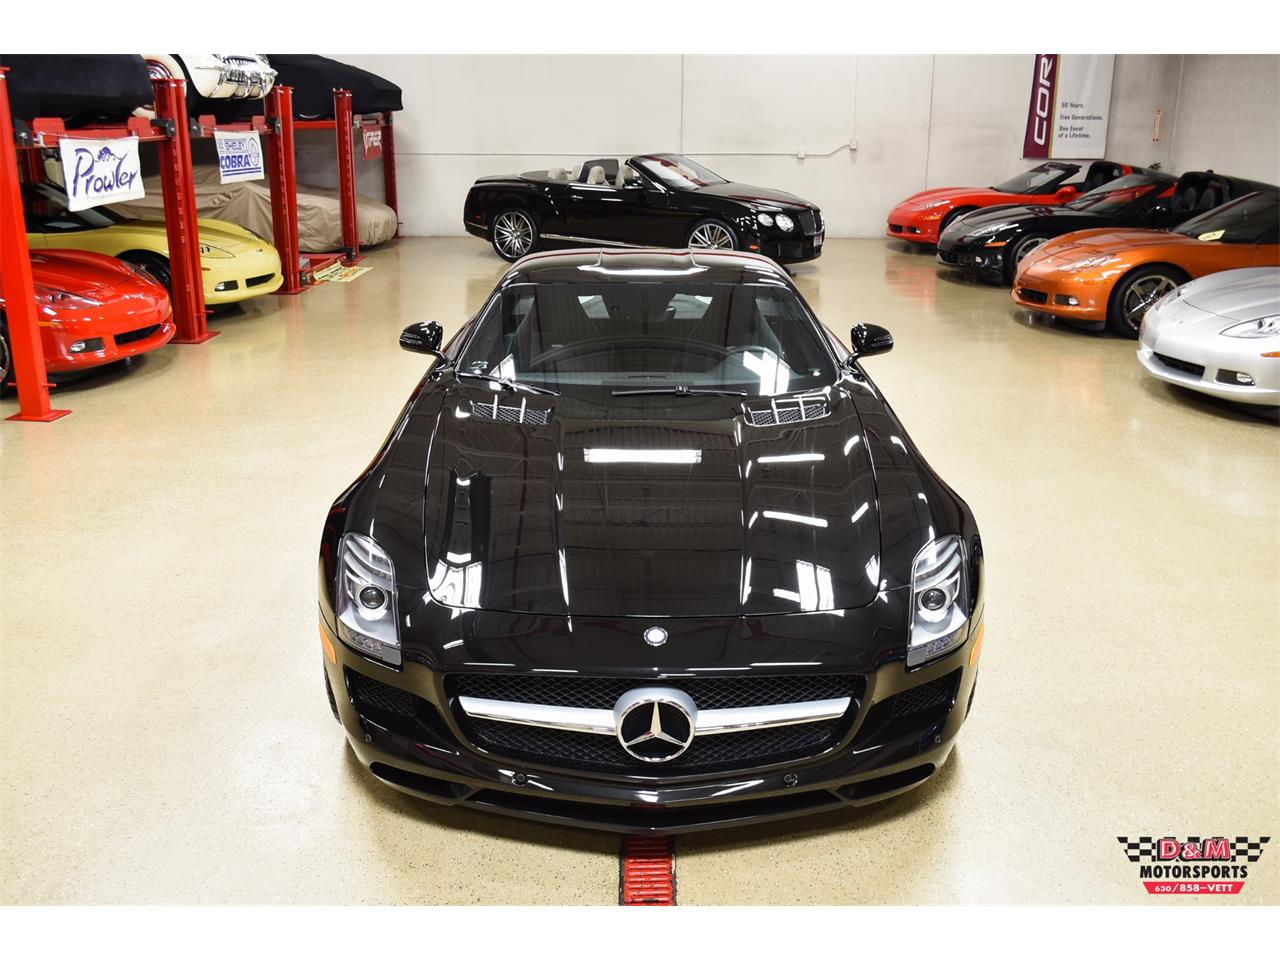 Large Picture of 2012 SLS AMG located in Illinois Offered by D & M Motorsports - PXCB